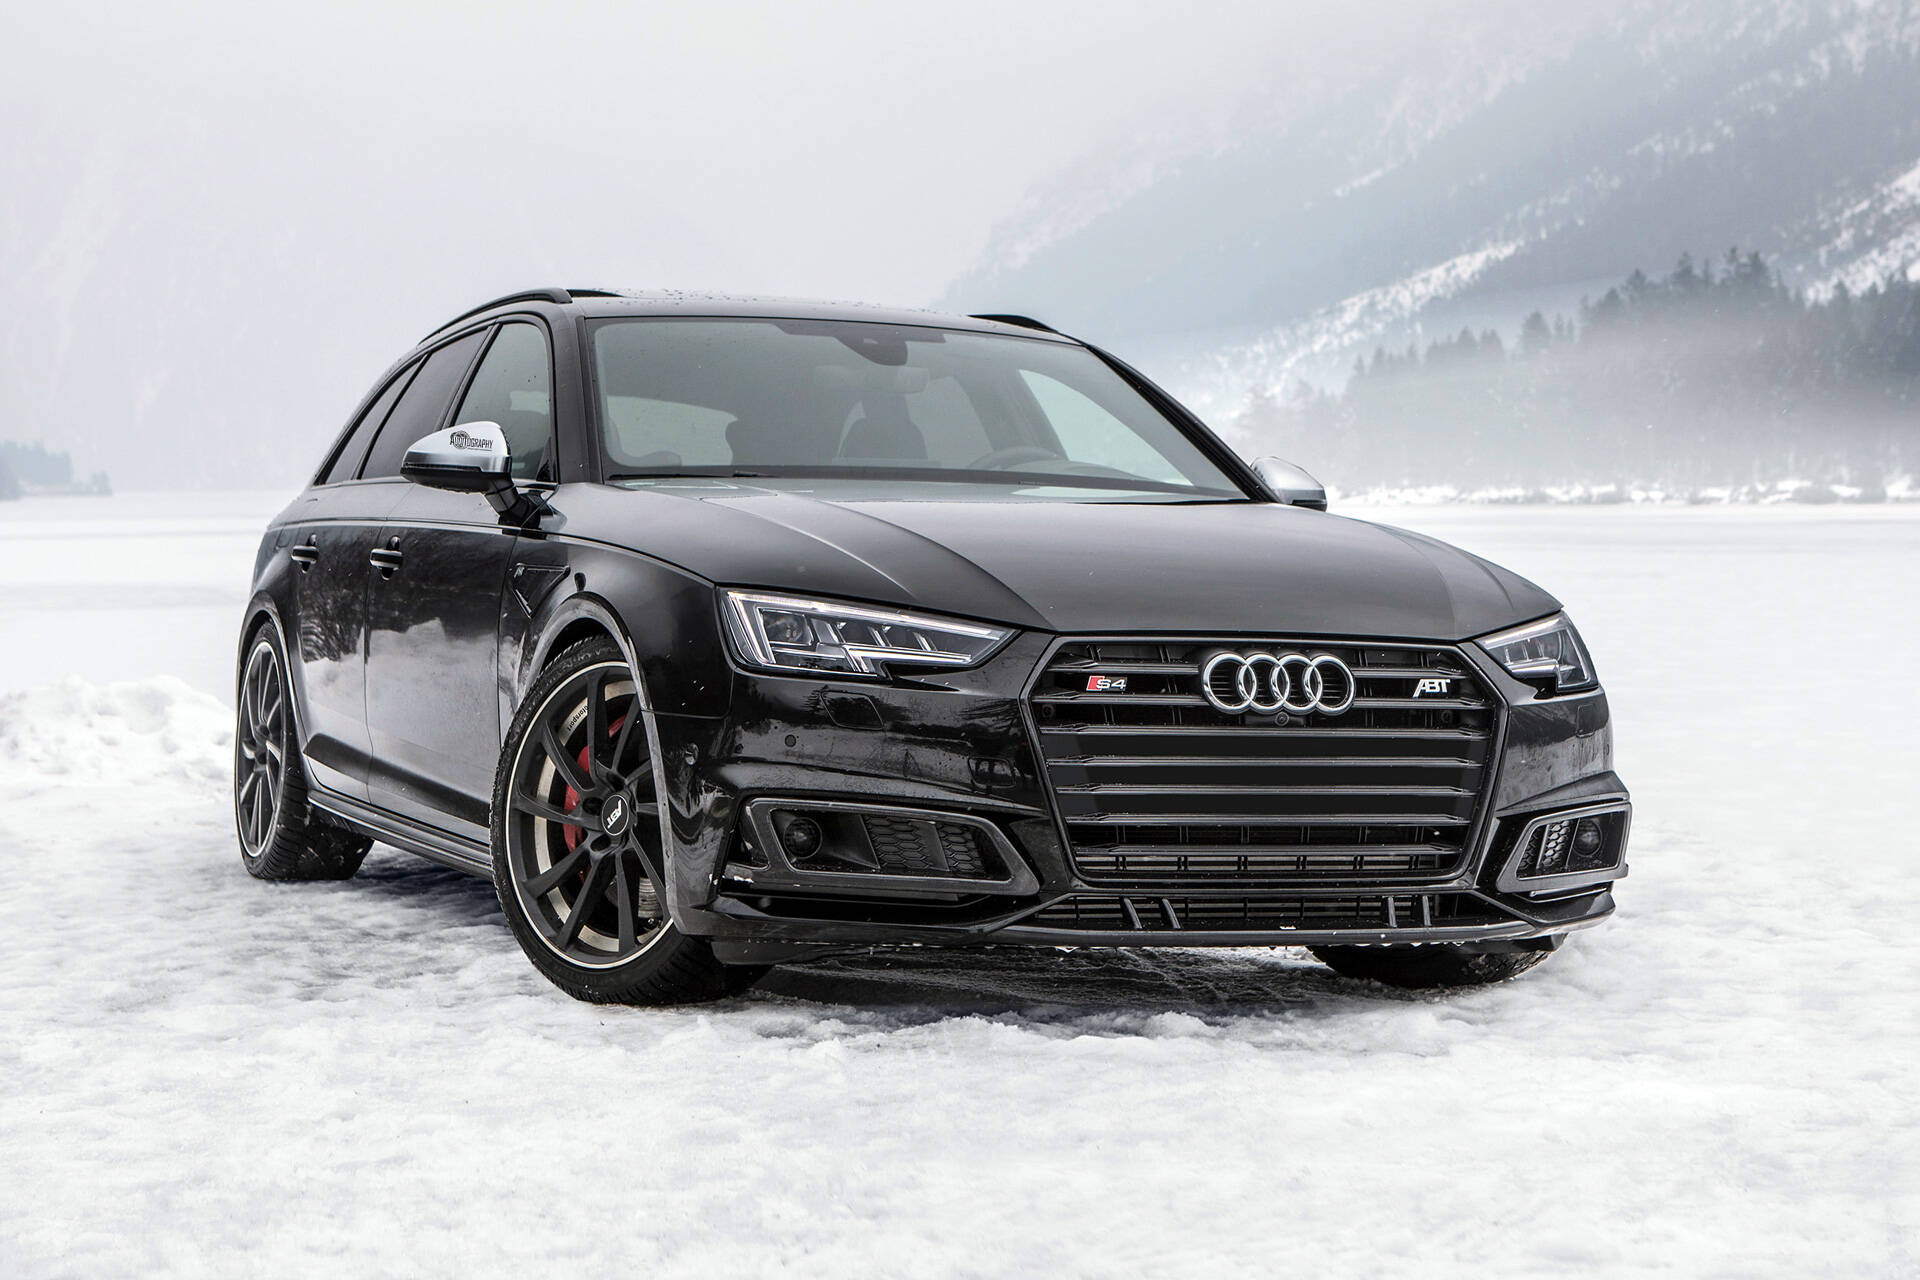 Up To 70 More Horsepower For The Audi S4  B9  With Abt